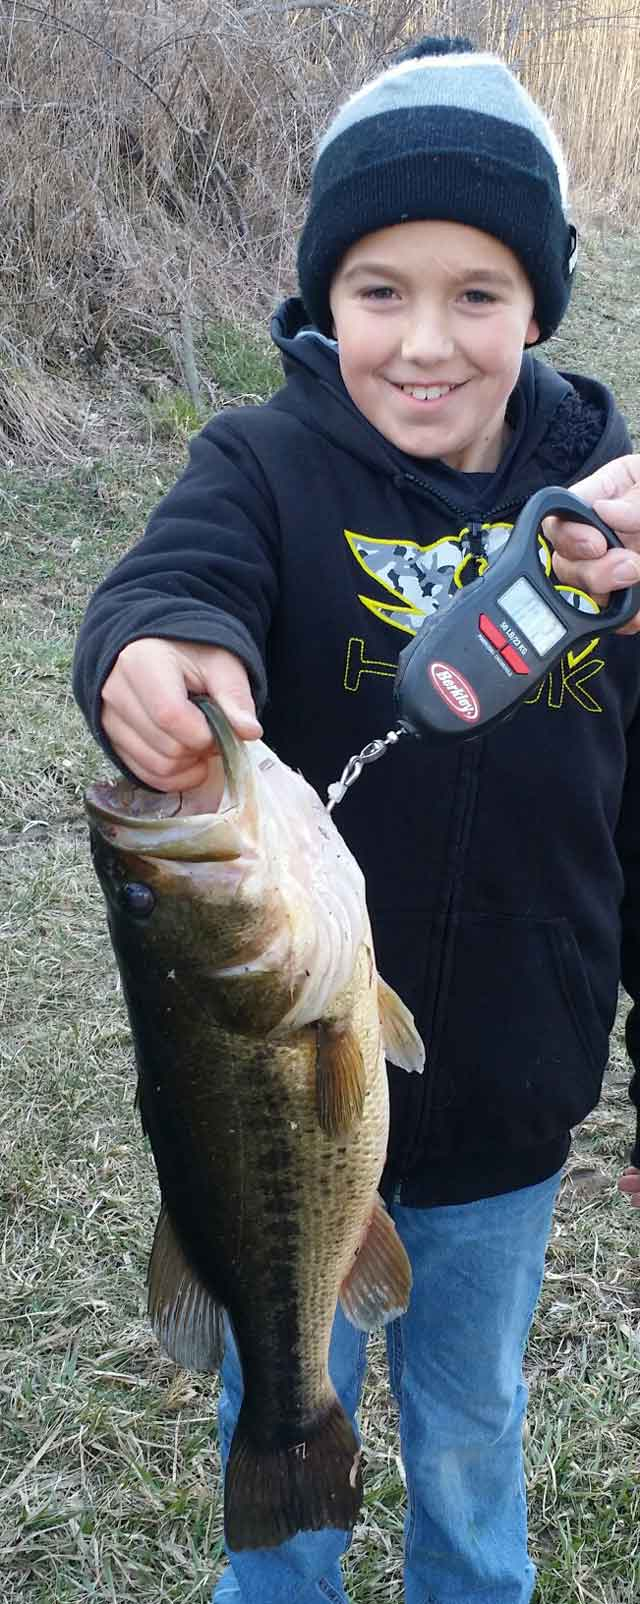 Tanner Wake of Elmwood caught this bass on March 18 while fishing a Culprit gold-and-black worm in a lake near Middlegrove